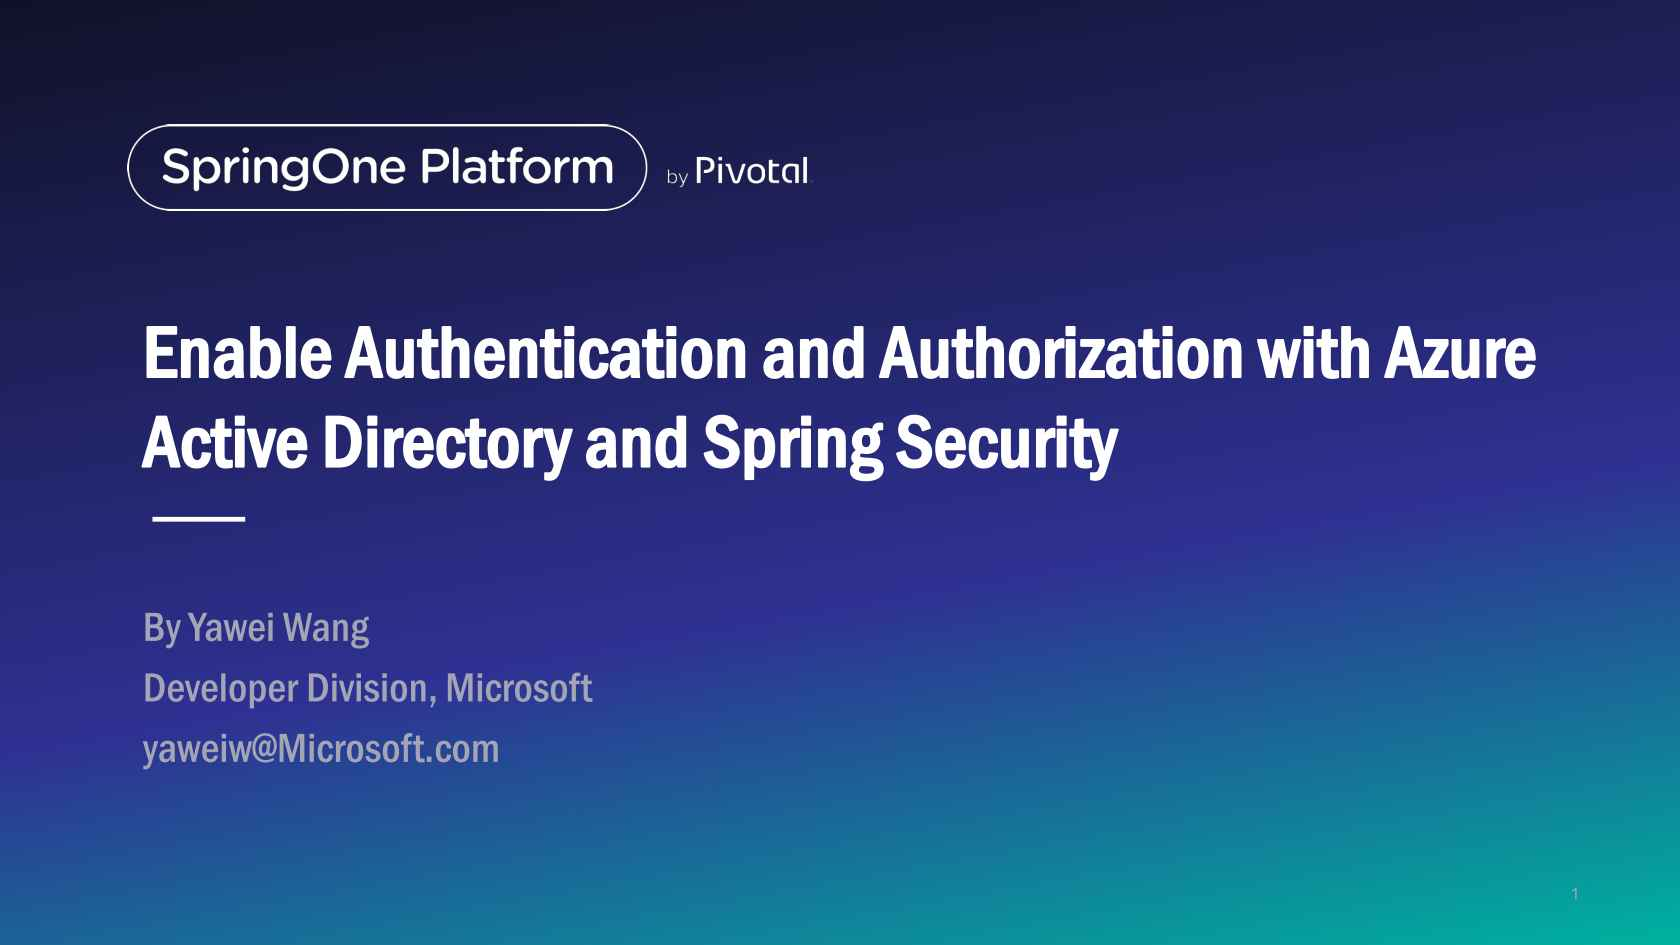 Enable Authentication and Authorization with Azure Active